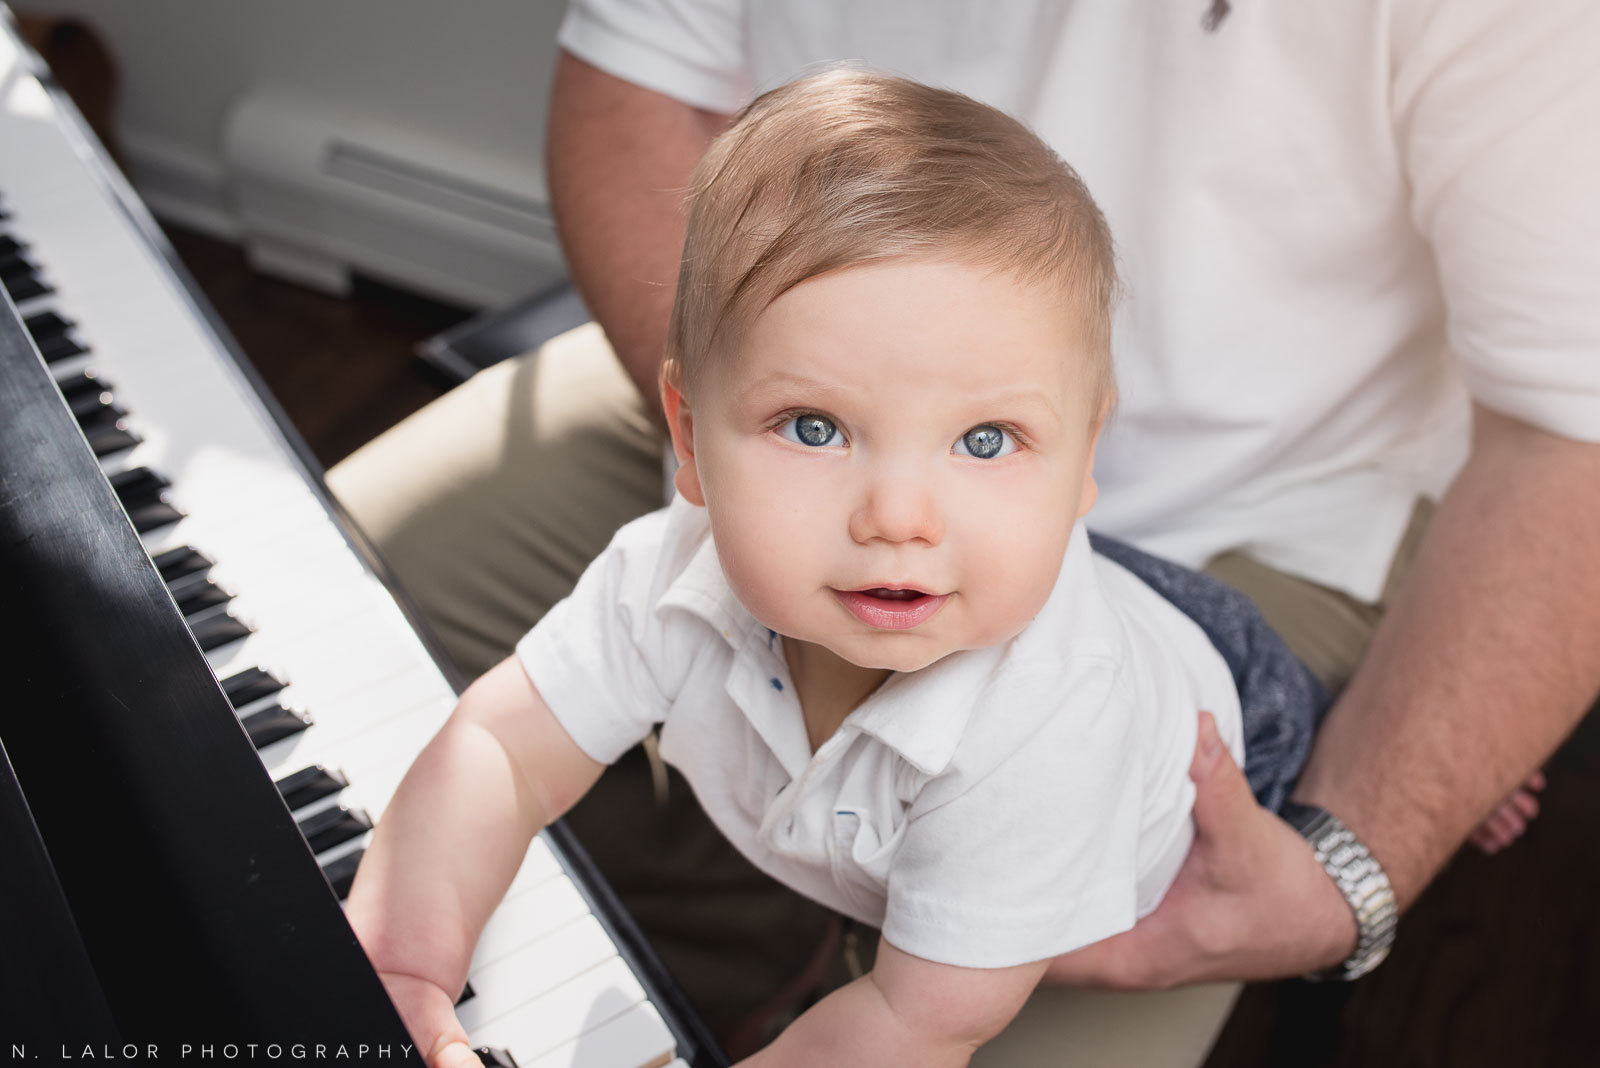 Editorial portrait of 8-month baby boy playing piano with Dad. At-home family session with N. Lalor Photography. Fairfield County, CT.